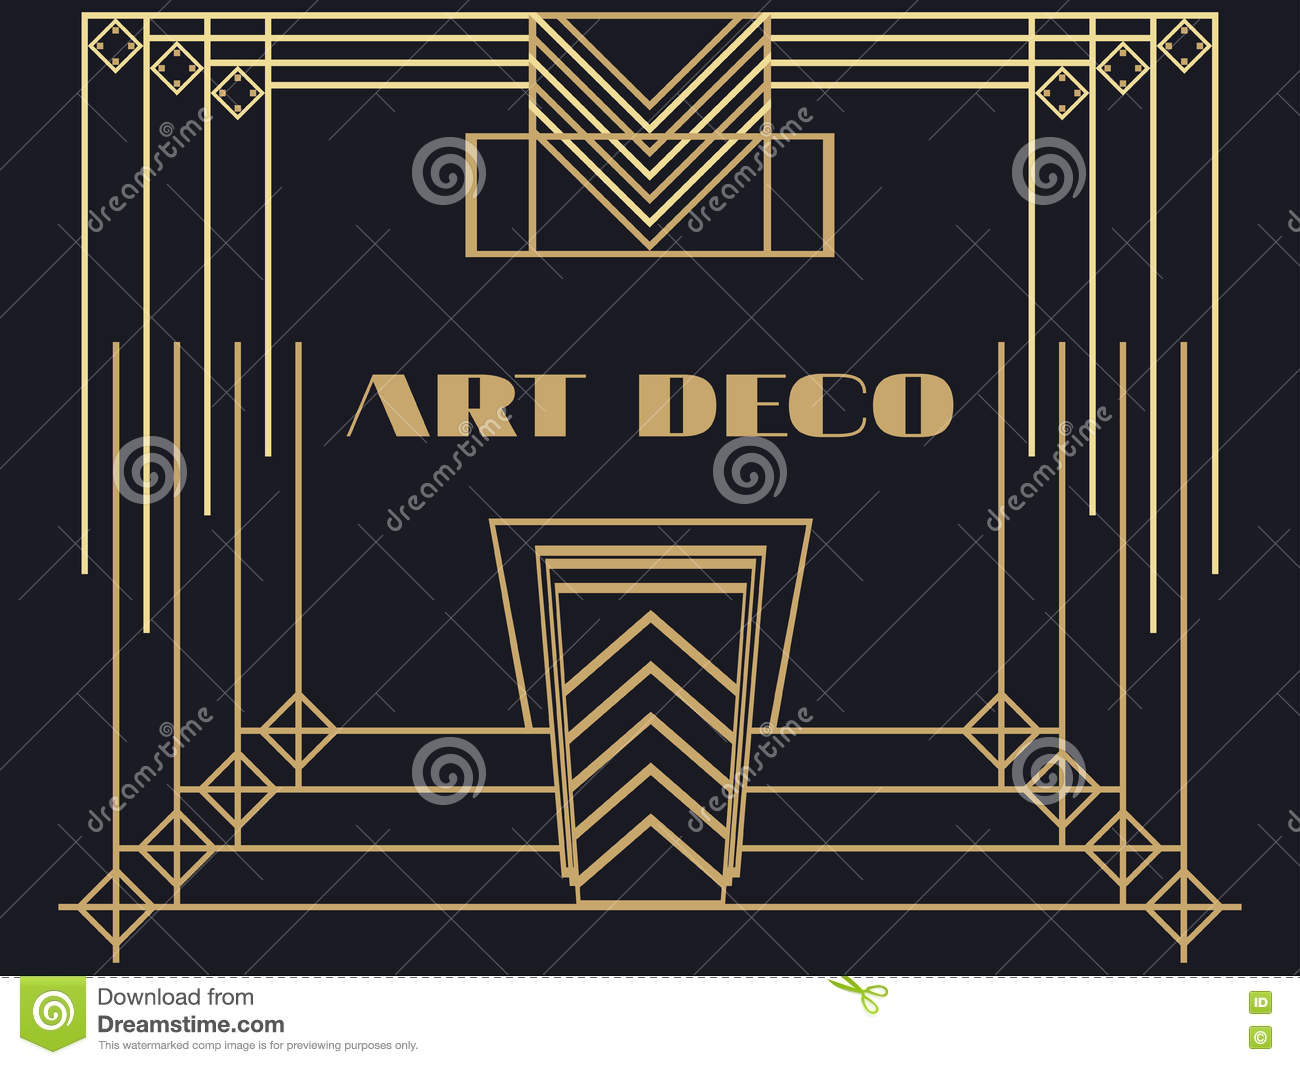 Art Deco Frame Art Deco Geometric Vintage Frame Retro